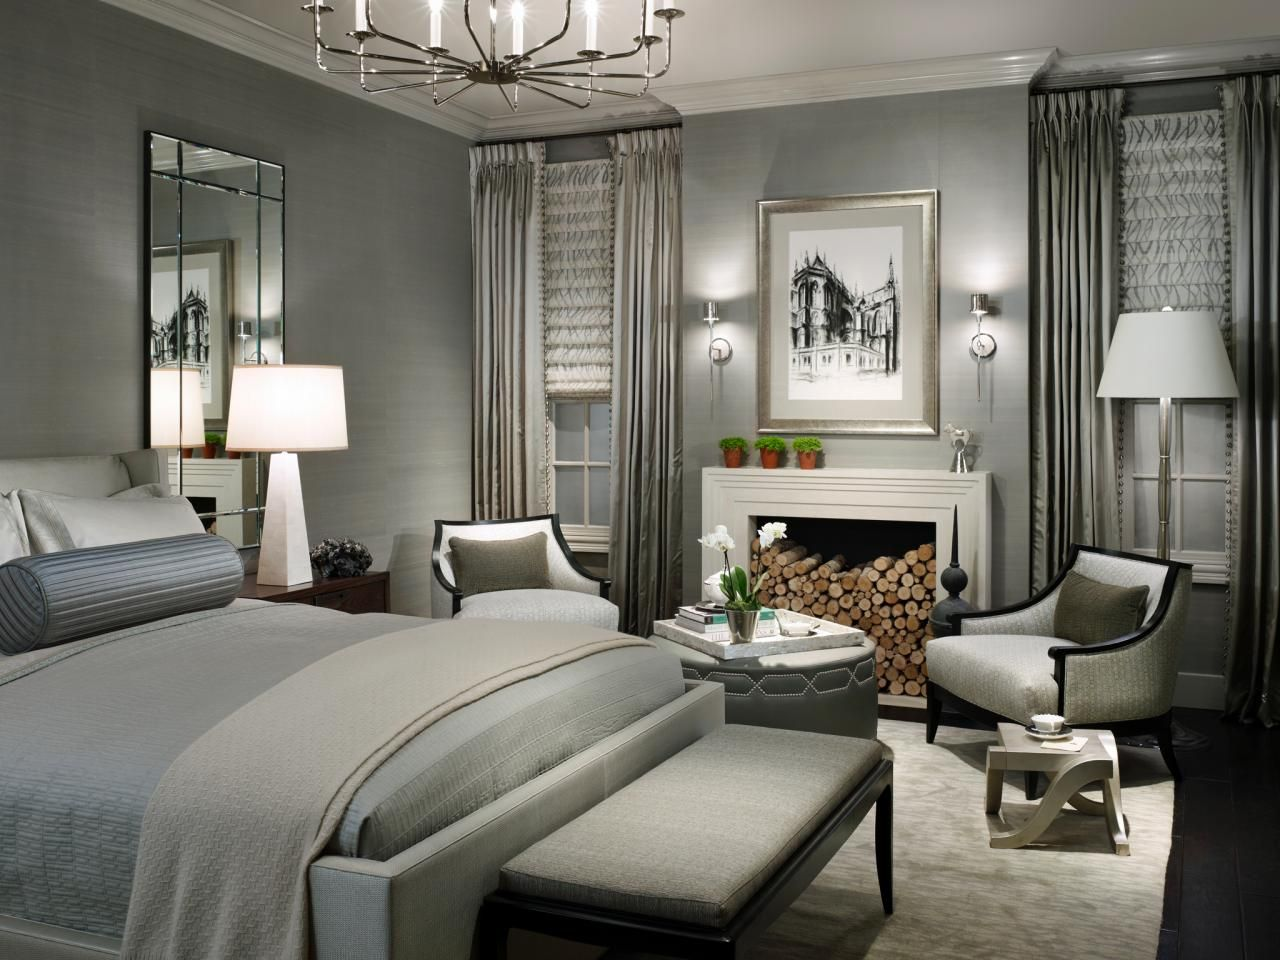 Beautiful Bedrooms  15 Shades of Gray. Beautiful Bedrooms  15 Shades of Gray   Gray bedroom  Hgtv and